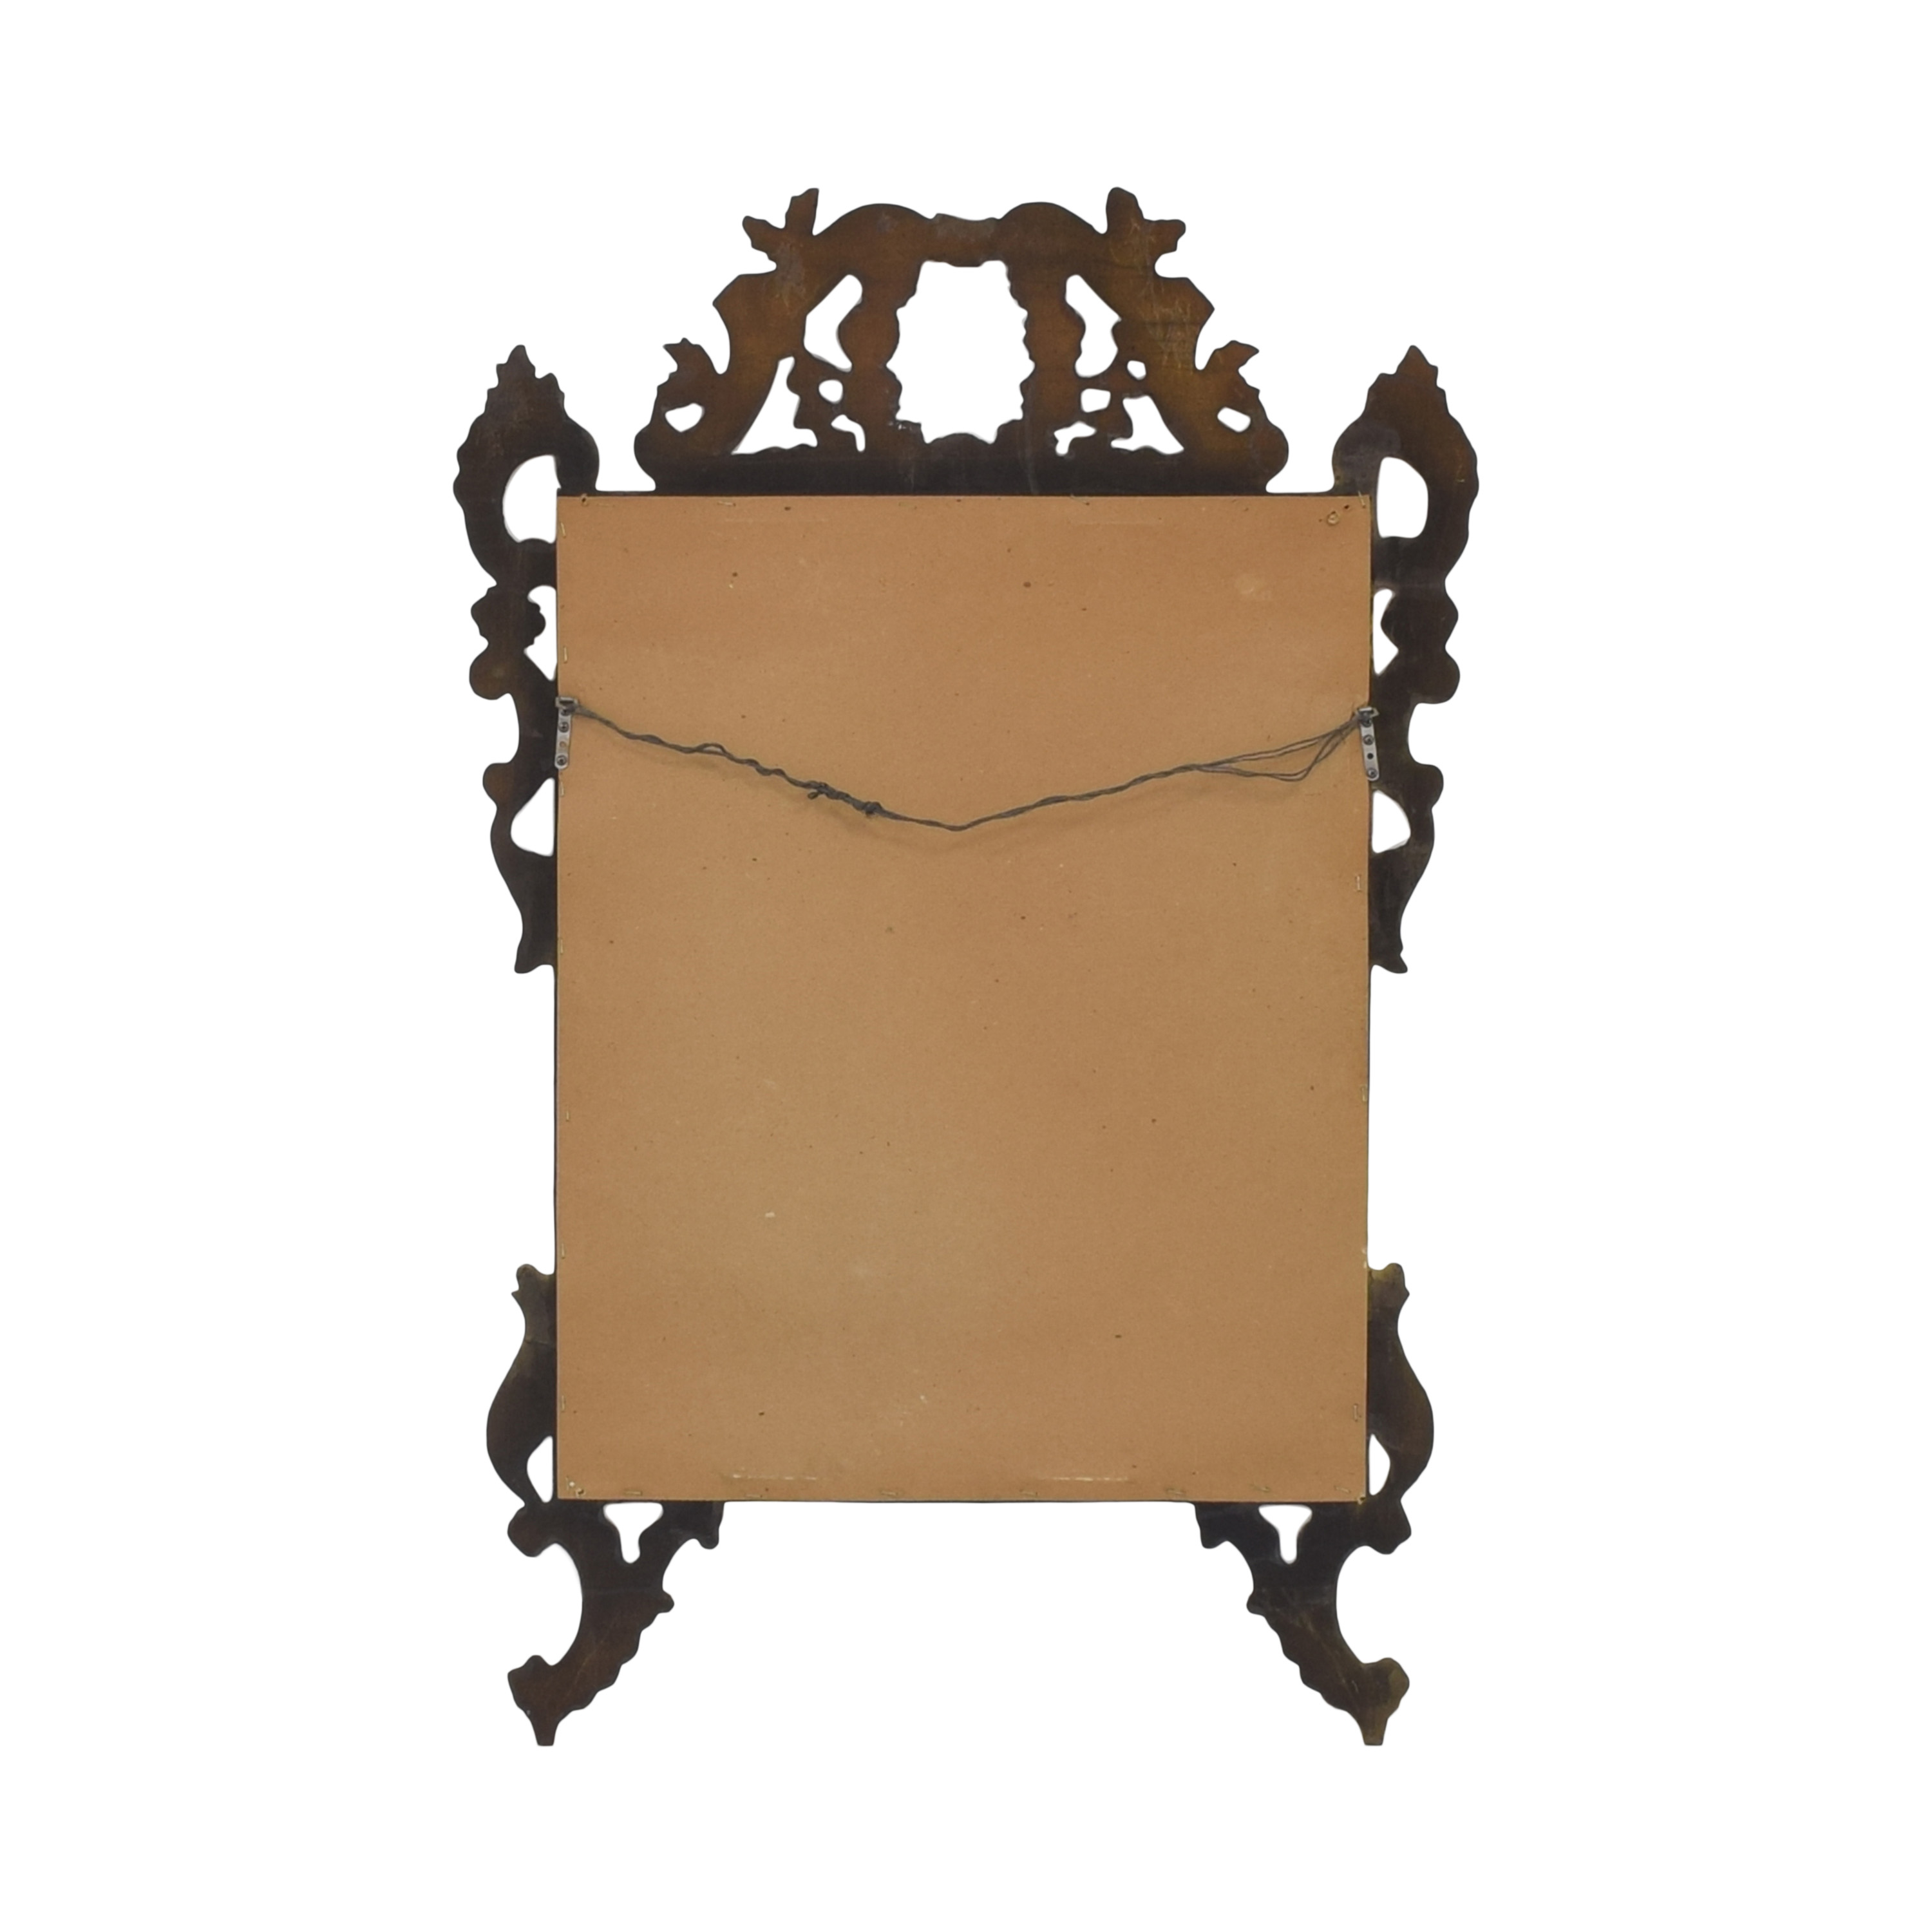 Ethan Allen Ethan Allen Carved Frame Wall Mirror on sale